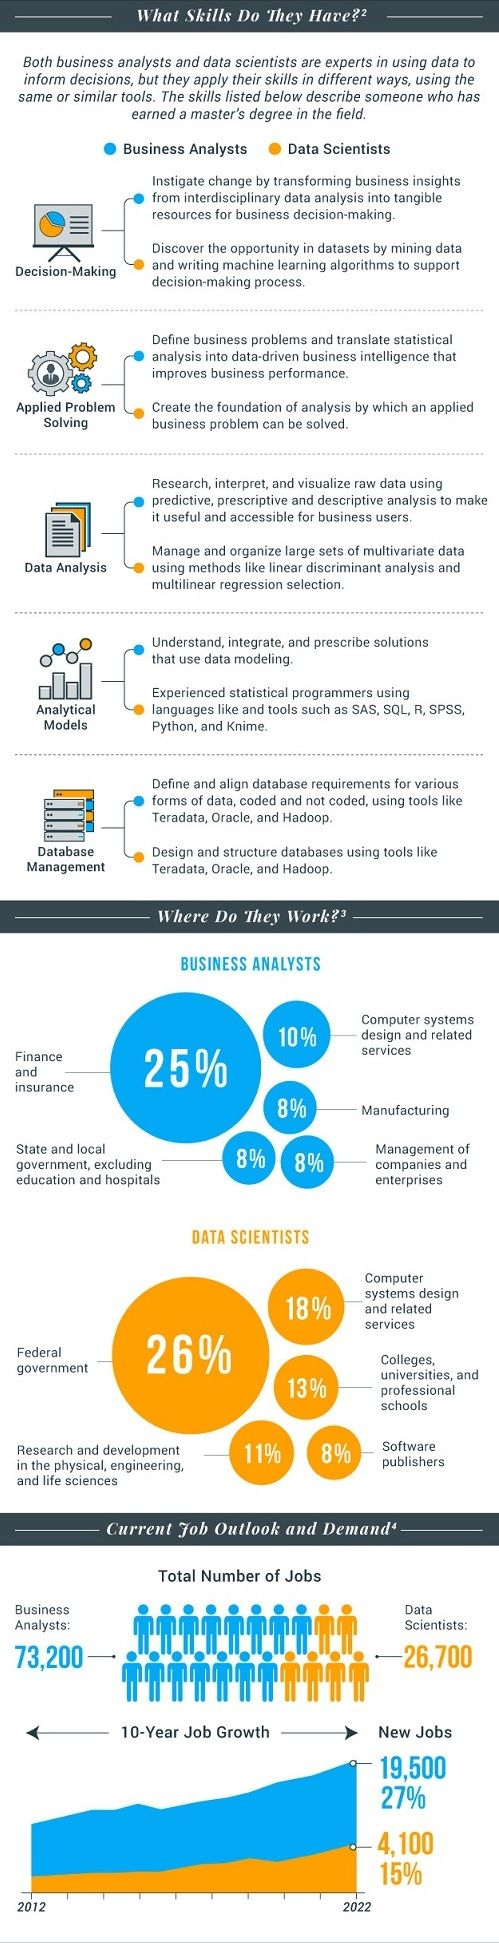 Infographic – Data Scientist or Business Analyst? Knowing the Difference is Key